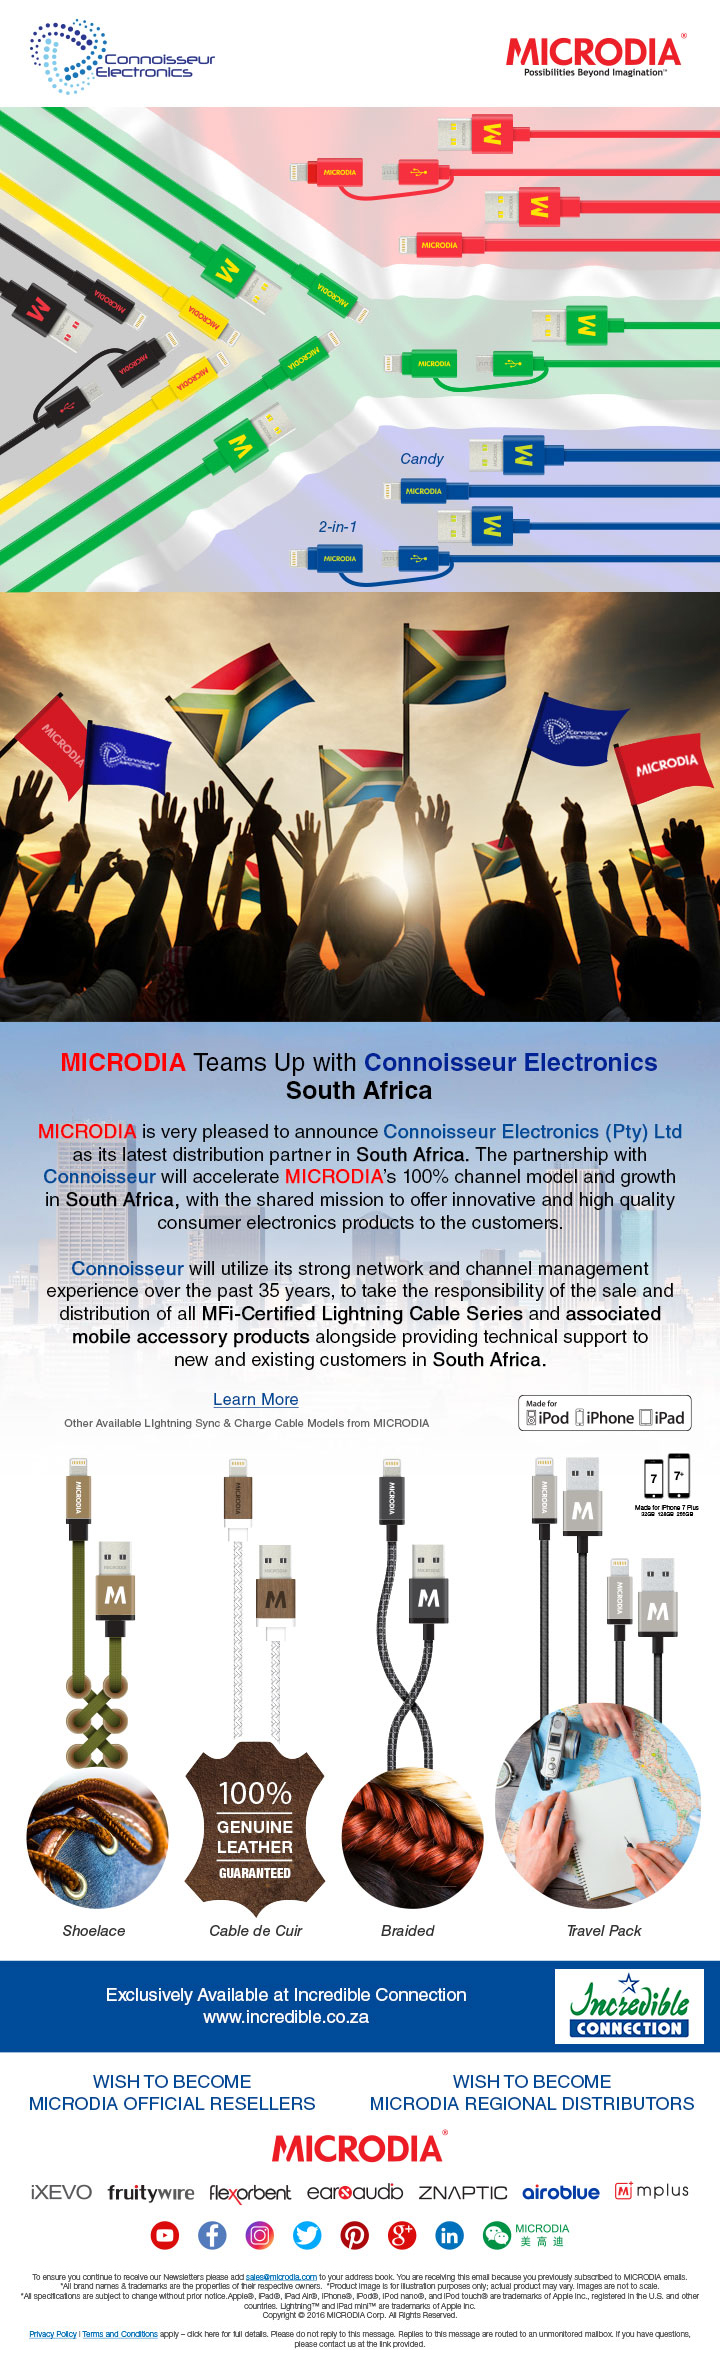 Team Up with Connoisseur Electronics